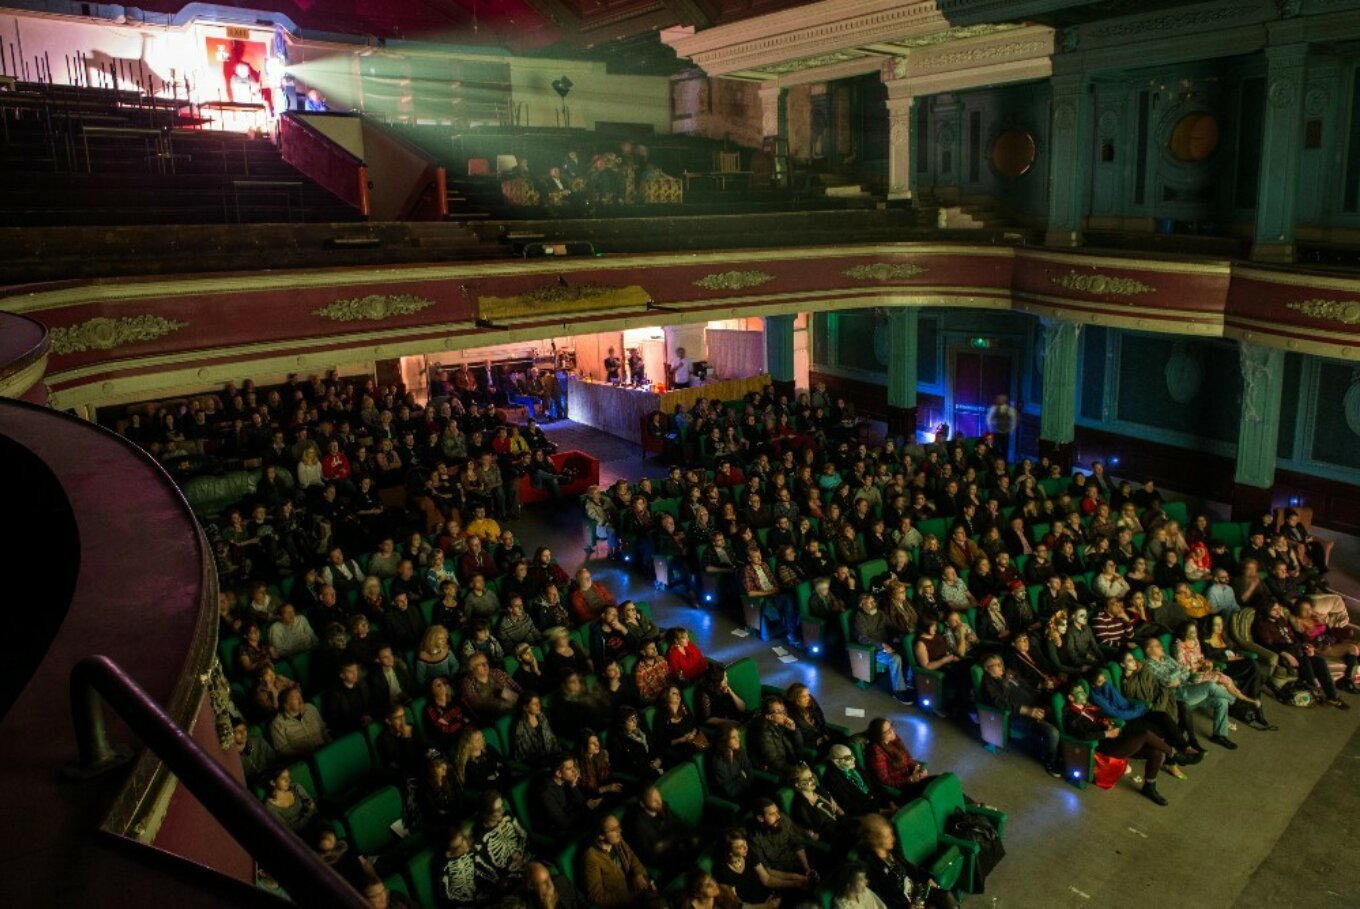 Sheffield silent film fest at abbeydale picture house